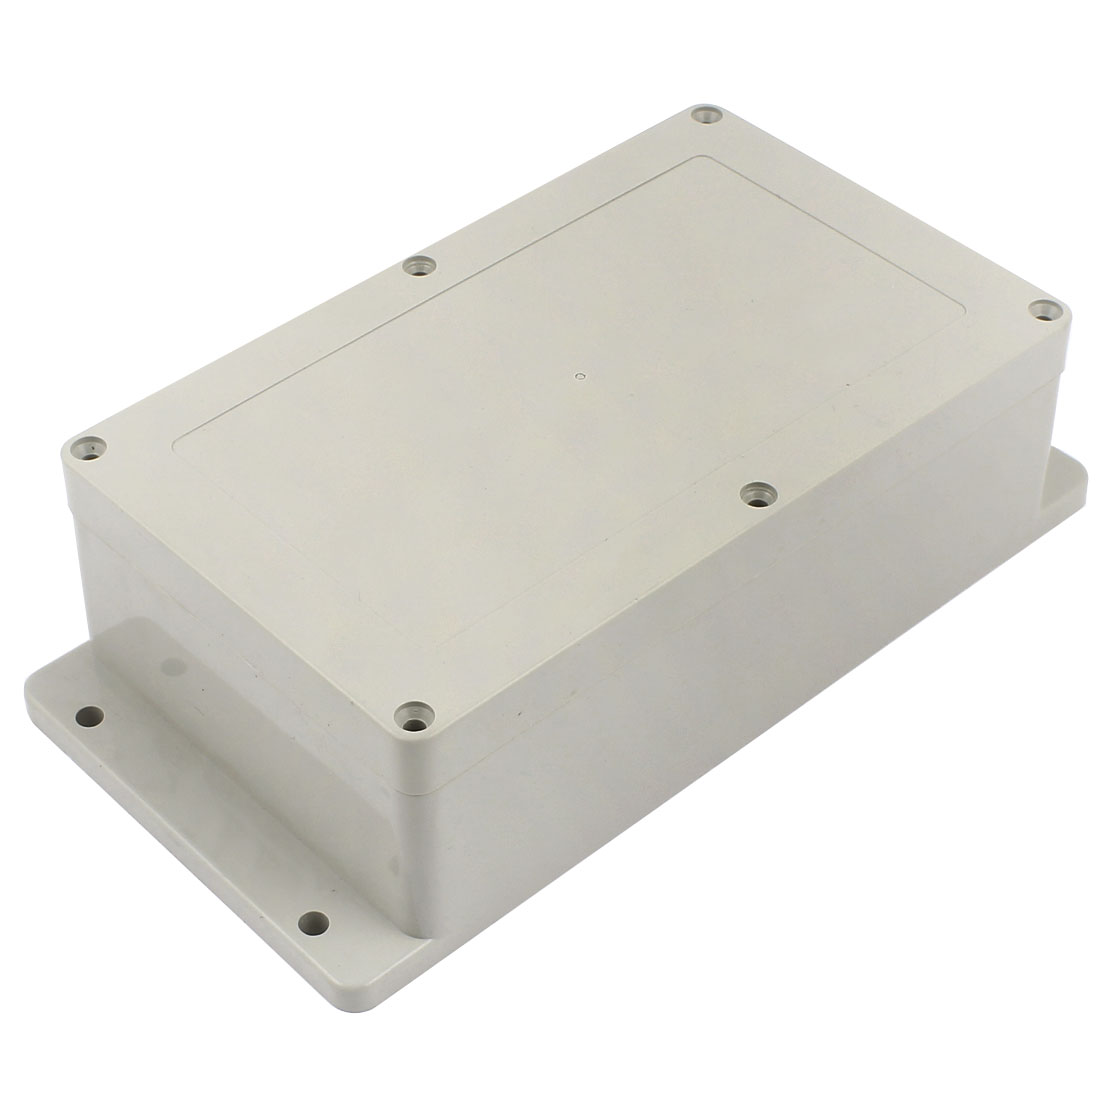 200mm x 90mm x 67mm Waterproof Plastic Sealed DIY Joint Electrical Junction Box